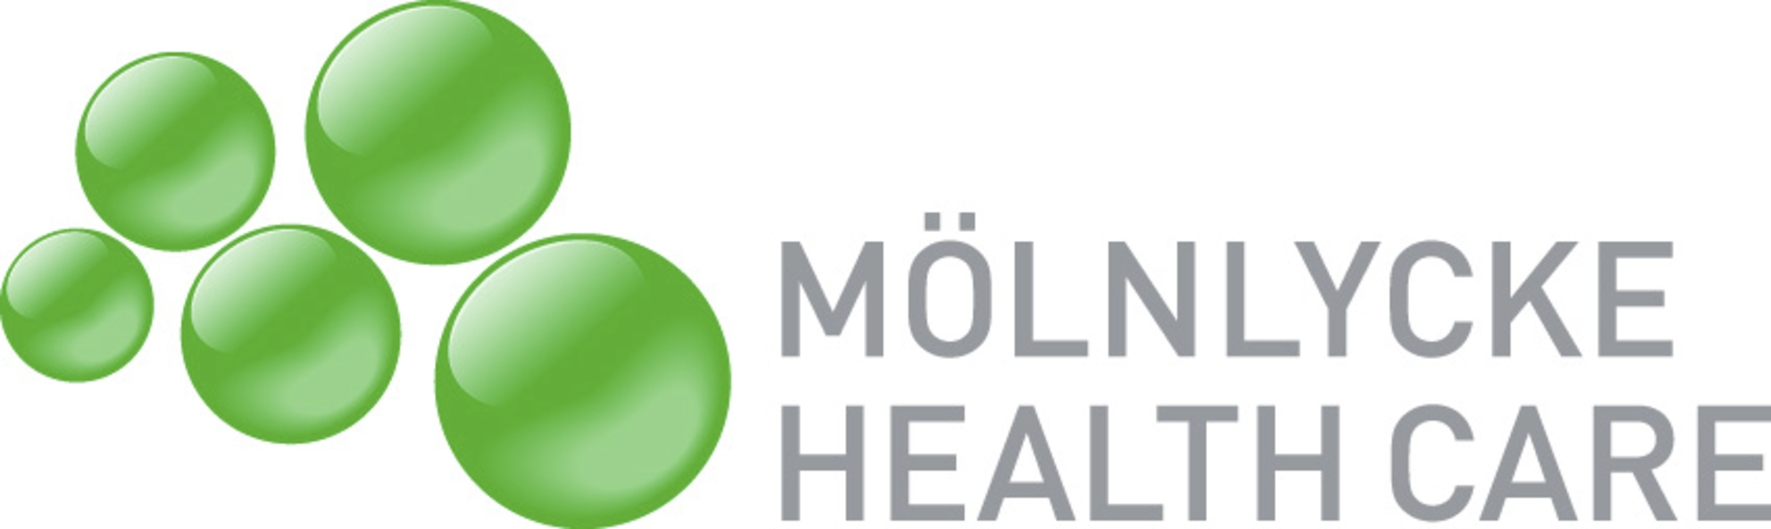 Molnlycke-health-care_2